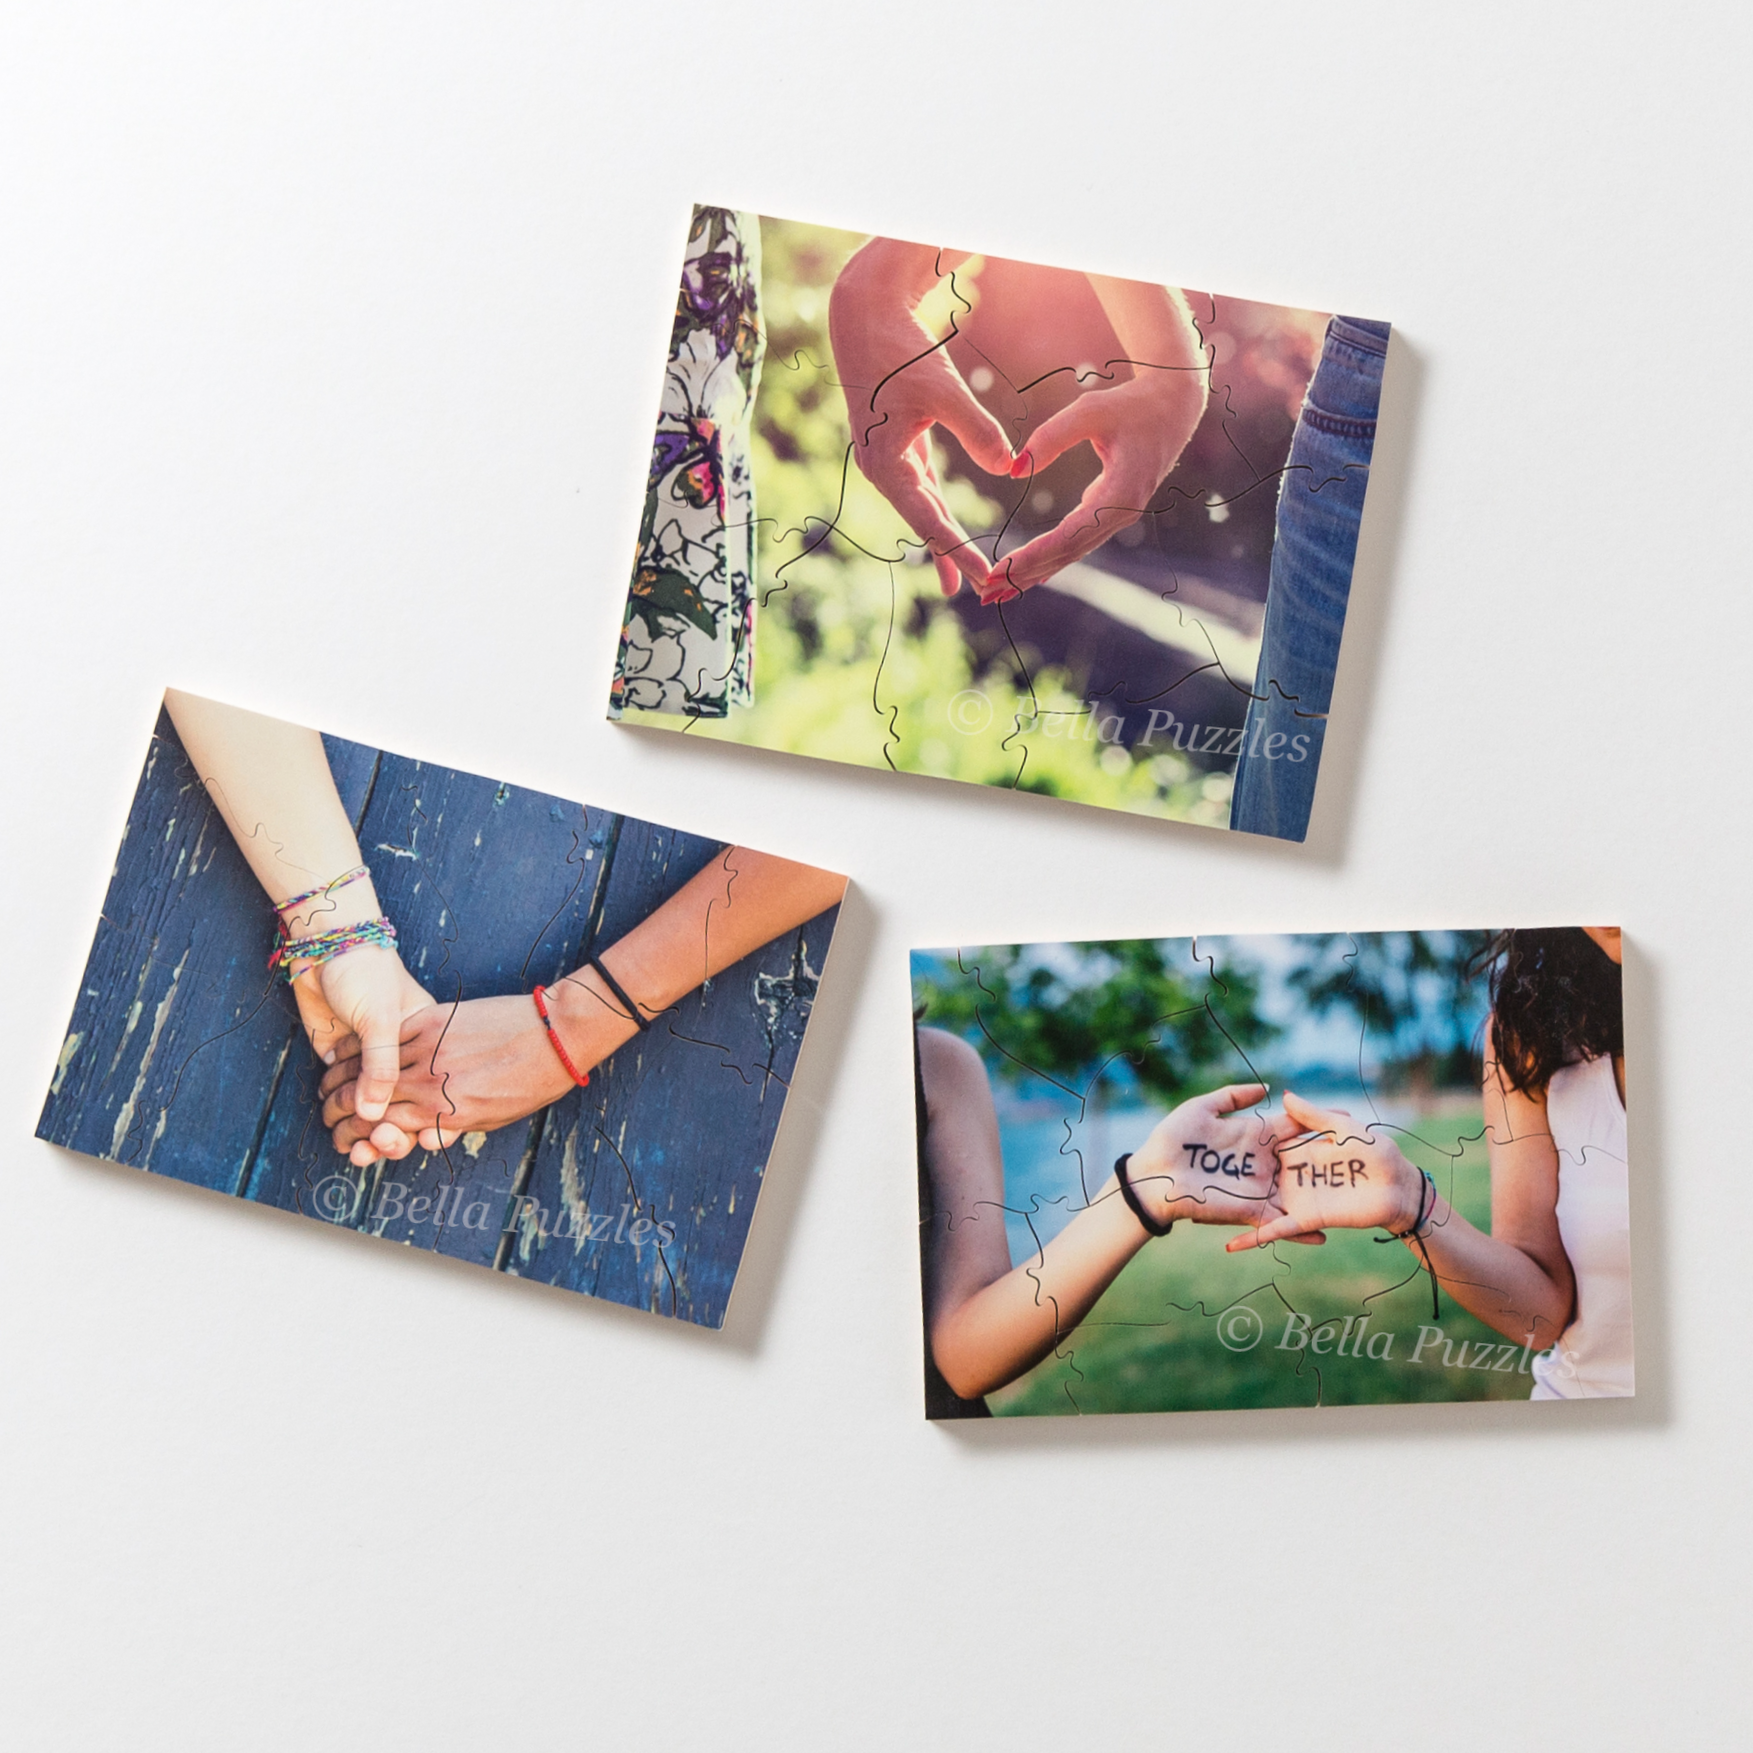 Gift sized custom wooden photo puzzles you can use for bridesmaid gifts, birthday presents, or the holidays.